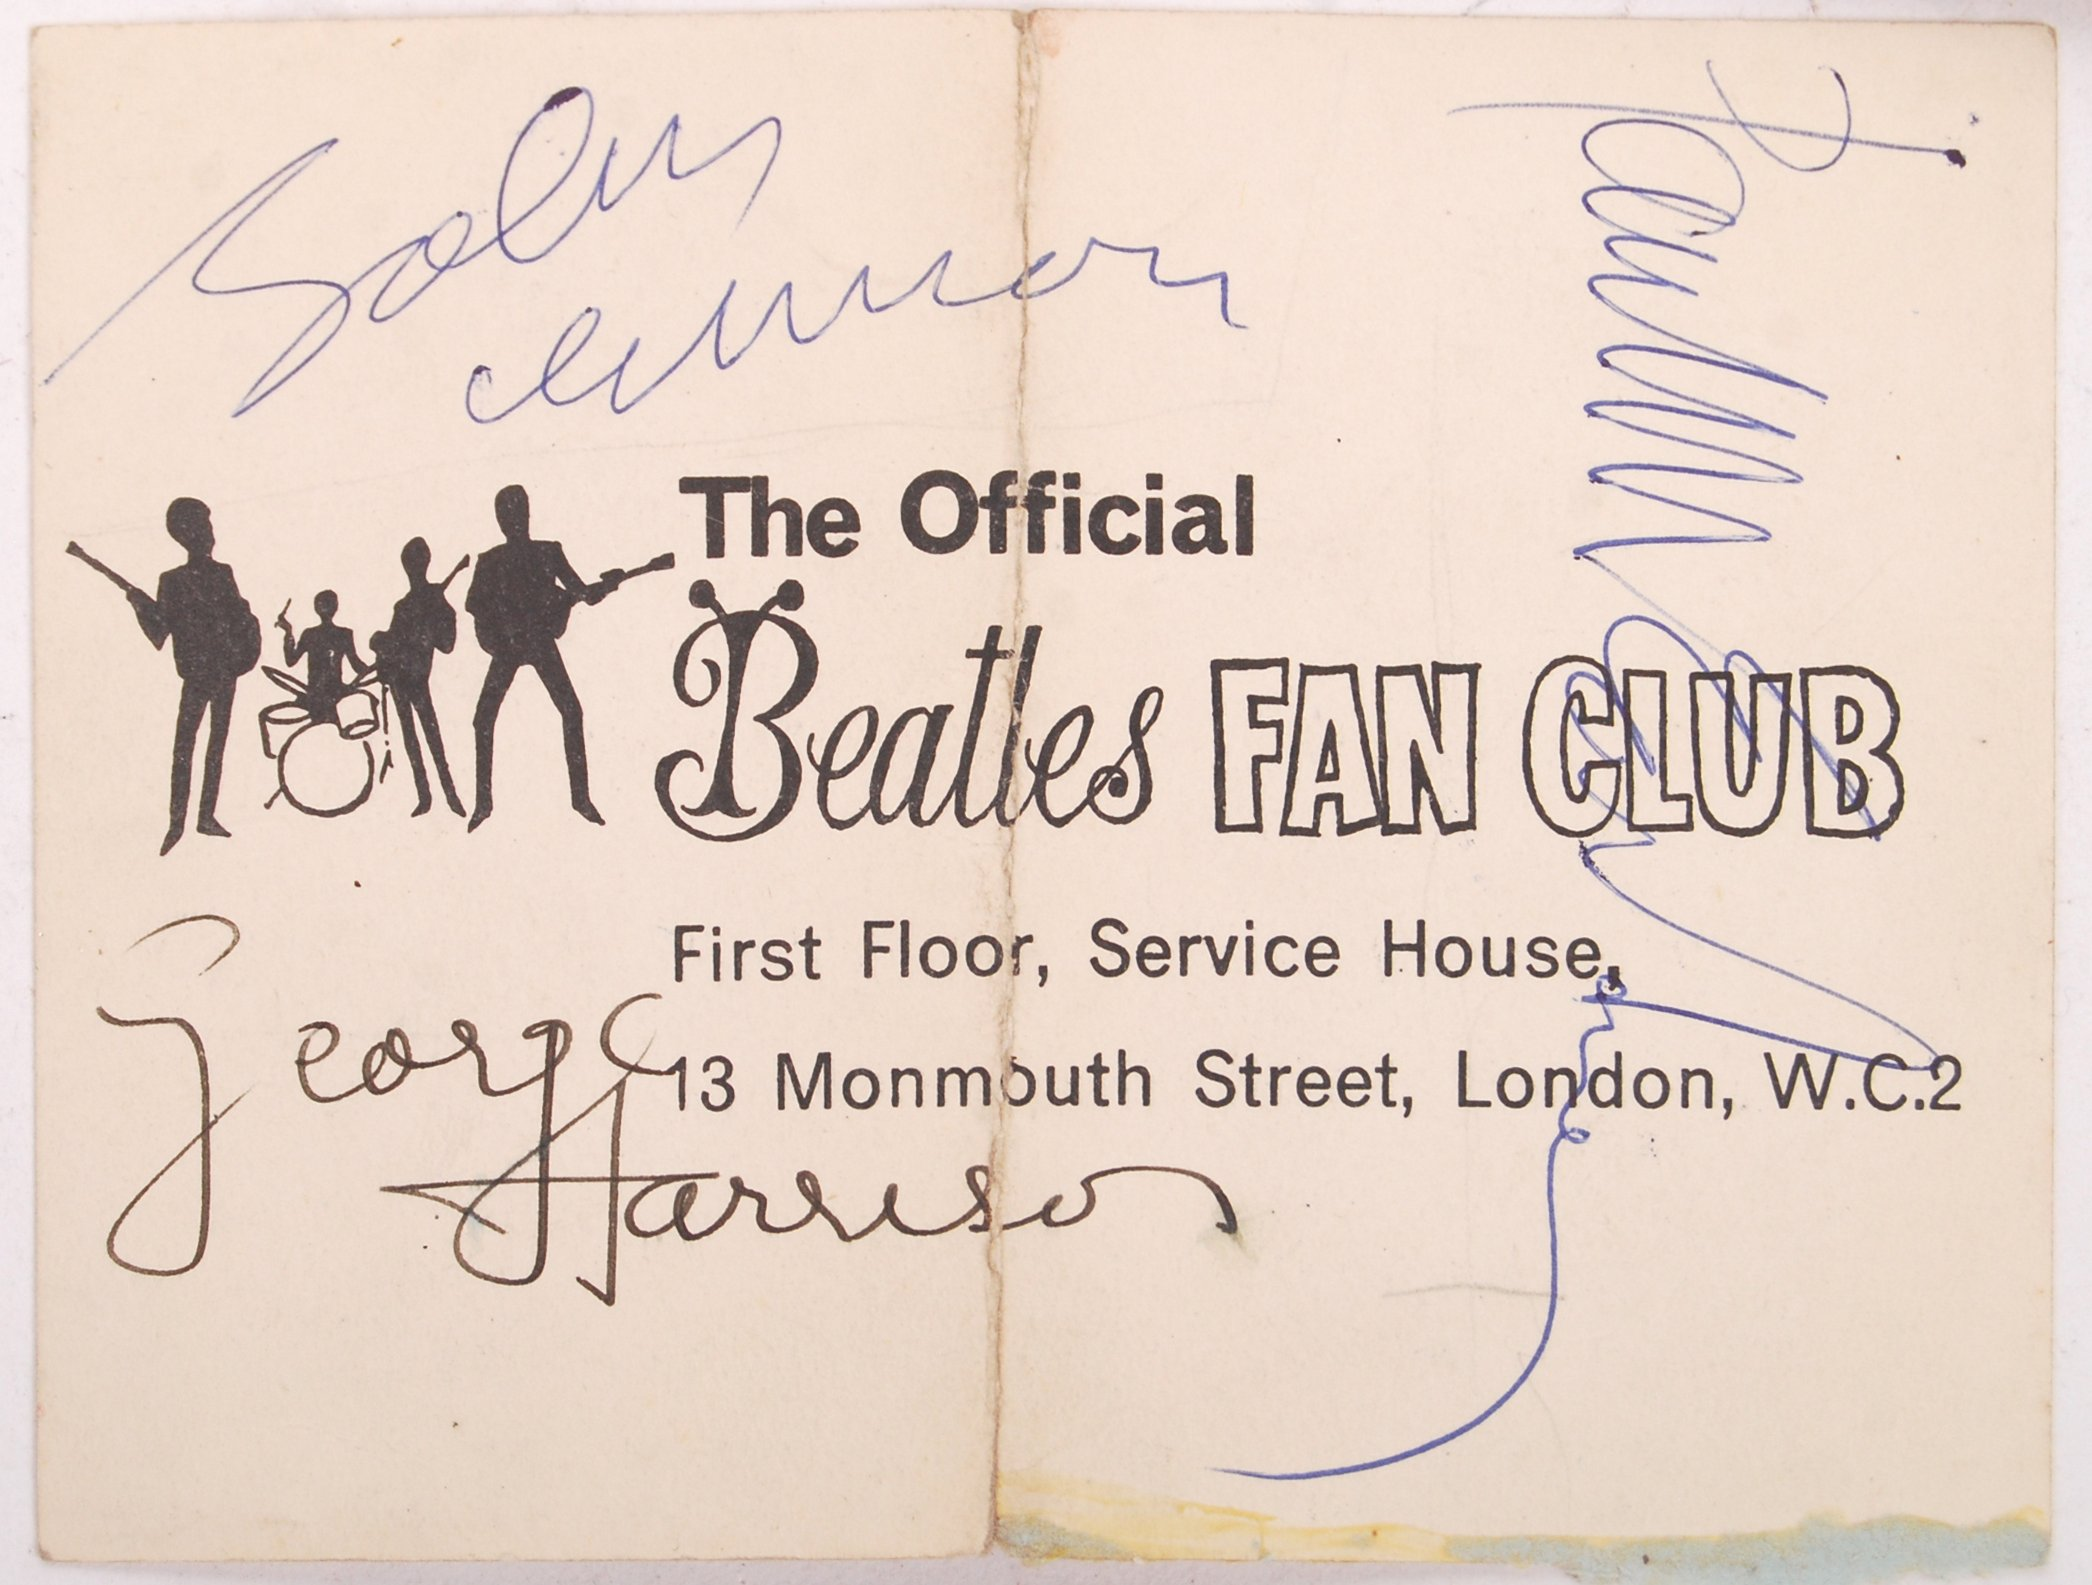 INCREDIBLY RARE PERSONAL BEATLES AUTOGRAPH COLLECT - Image 2 of 12